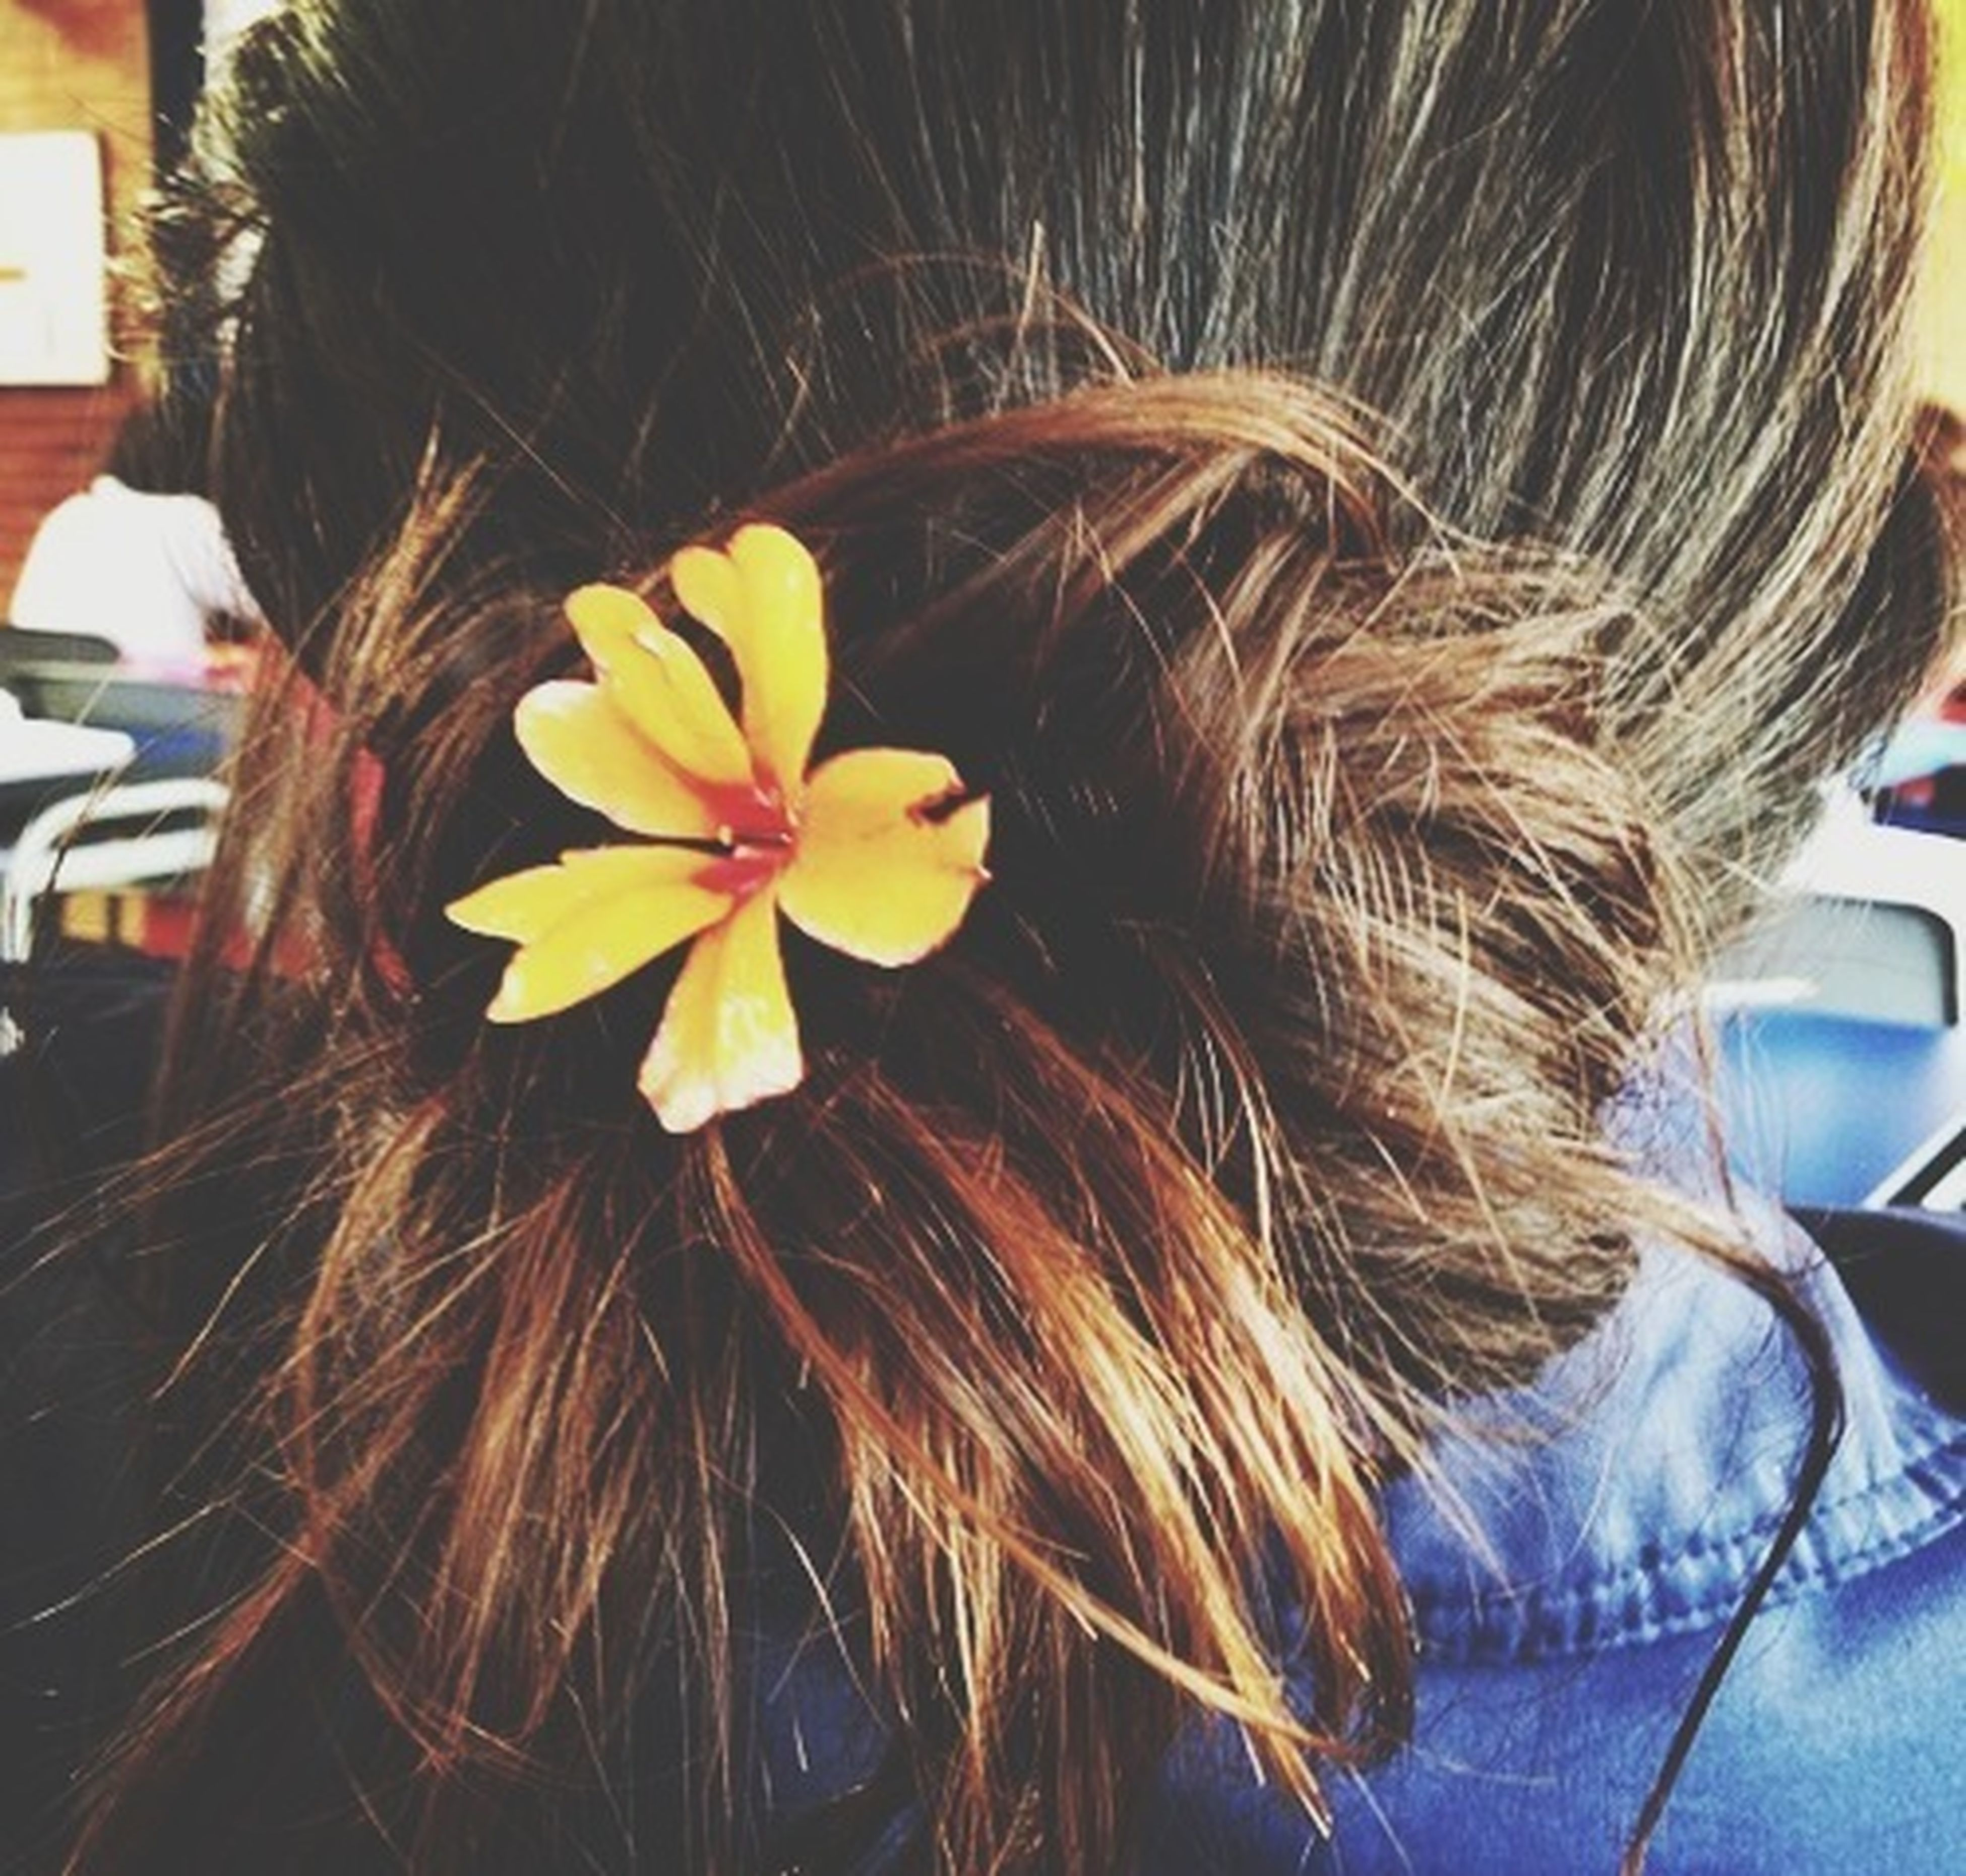 flower, indoors, long hair, close-up, fragility, freshness, human hair, person, headshot, flower head, petal, holding, young women, focus on foreground, lifestyles, leisure activity, yellow, brown hair